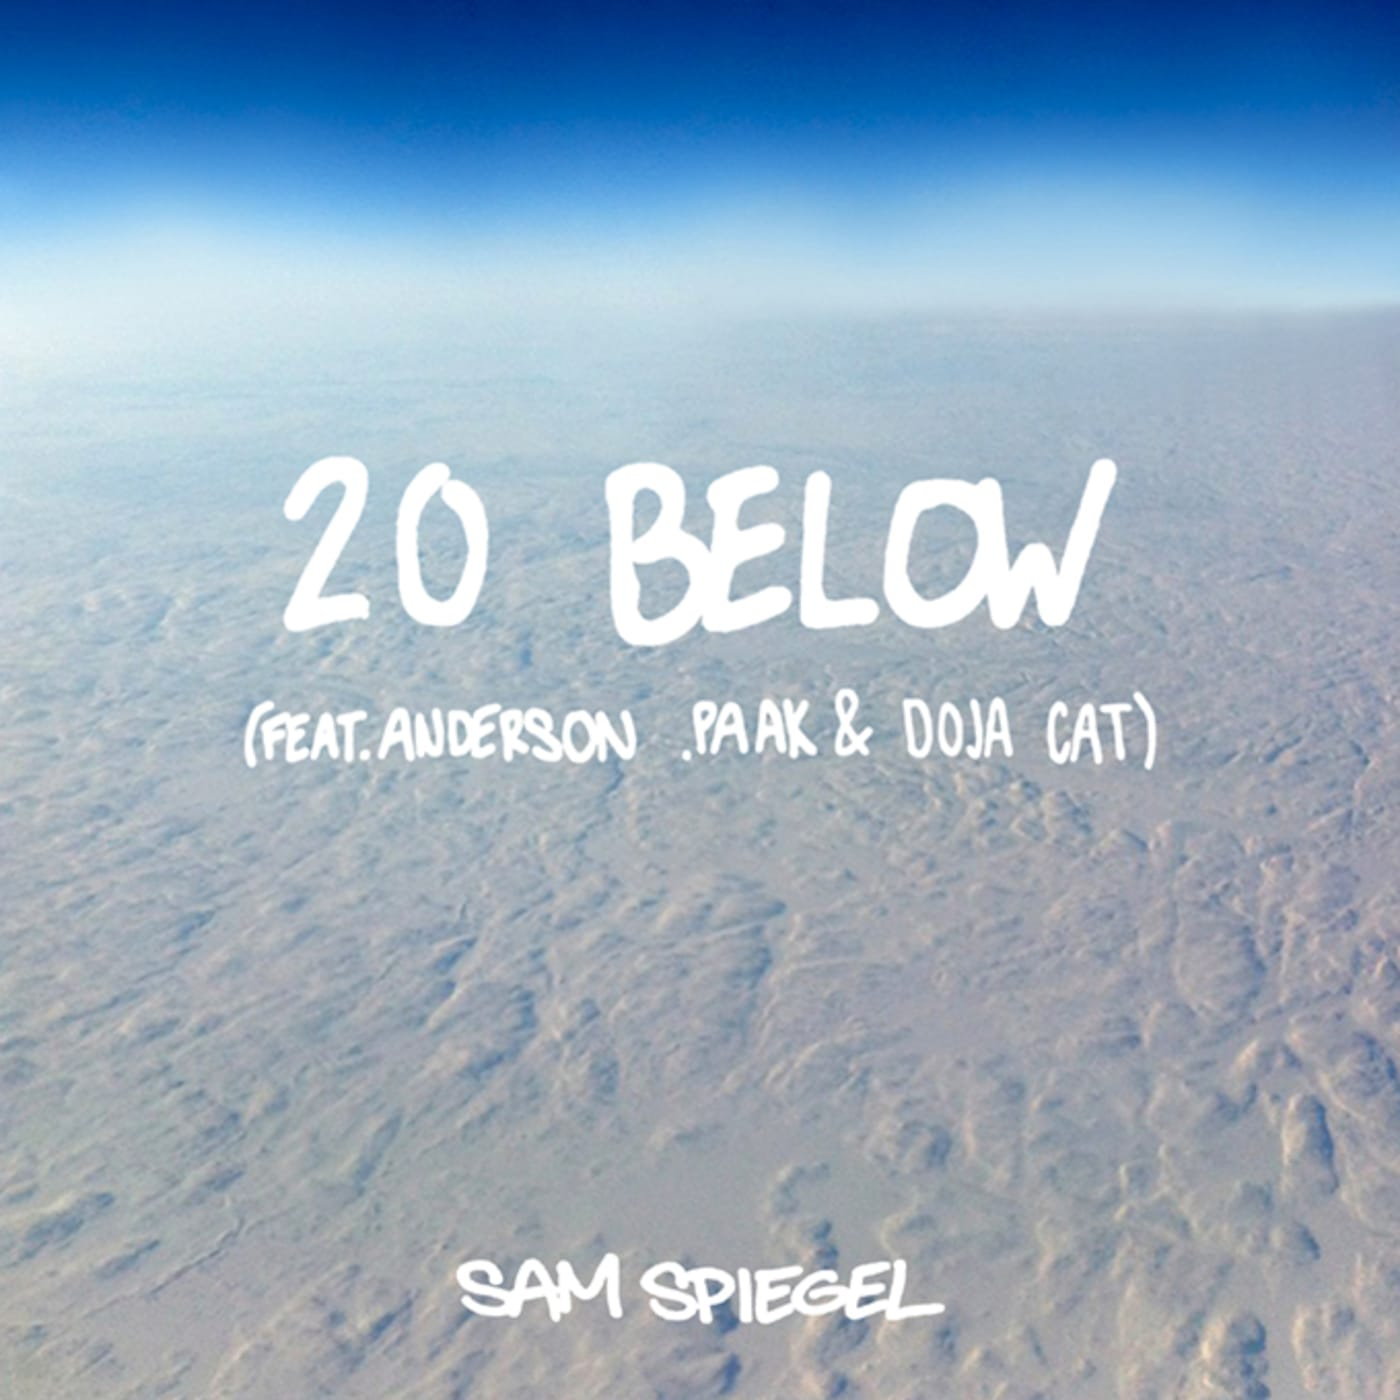 20 below sam spiegel artwork